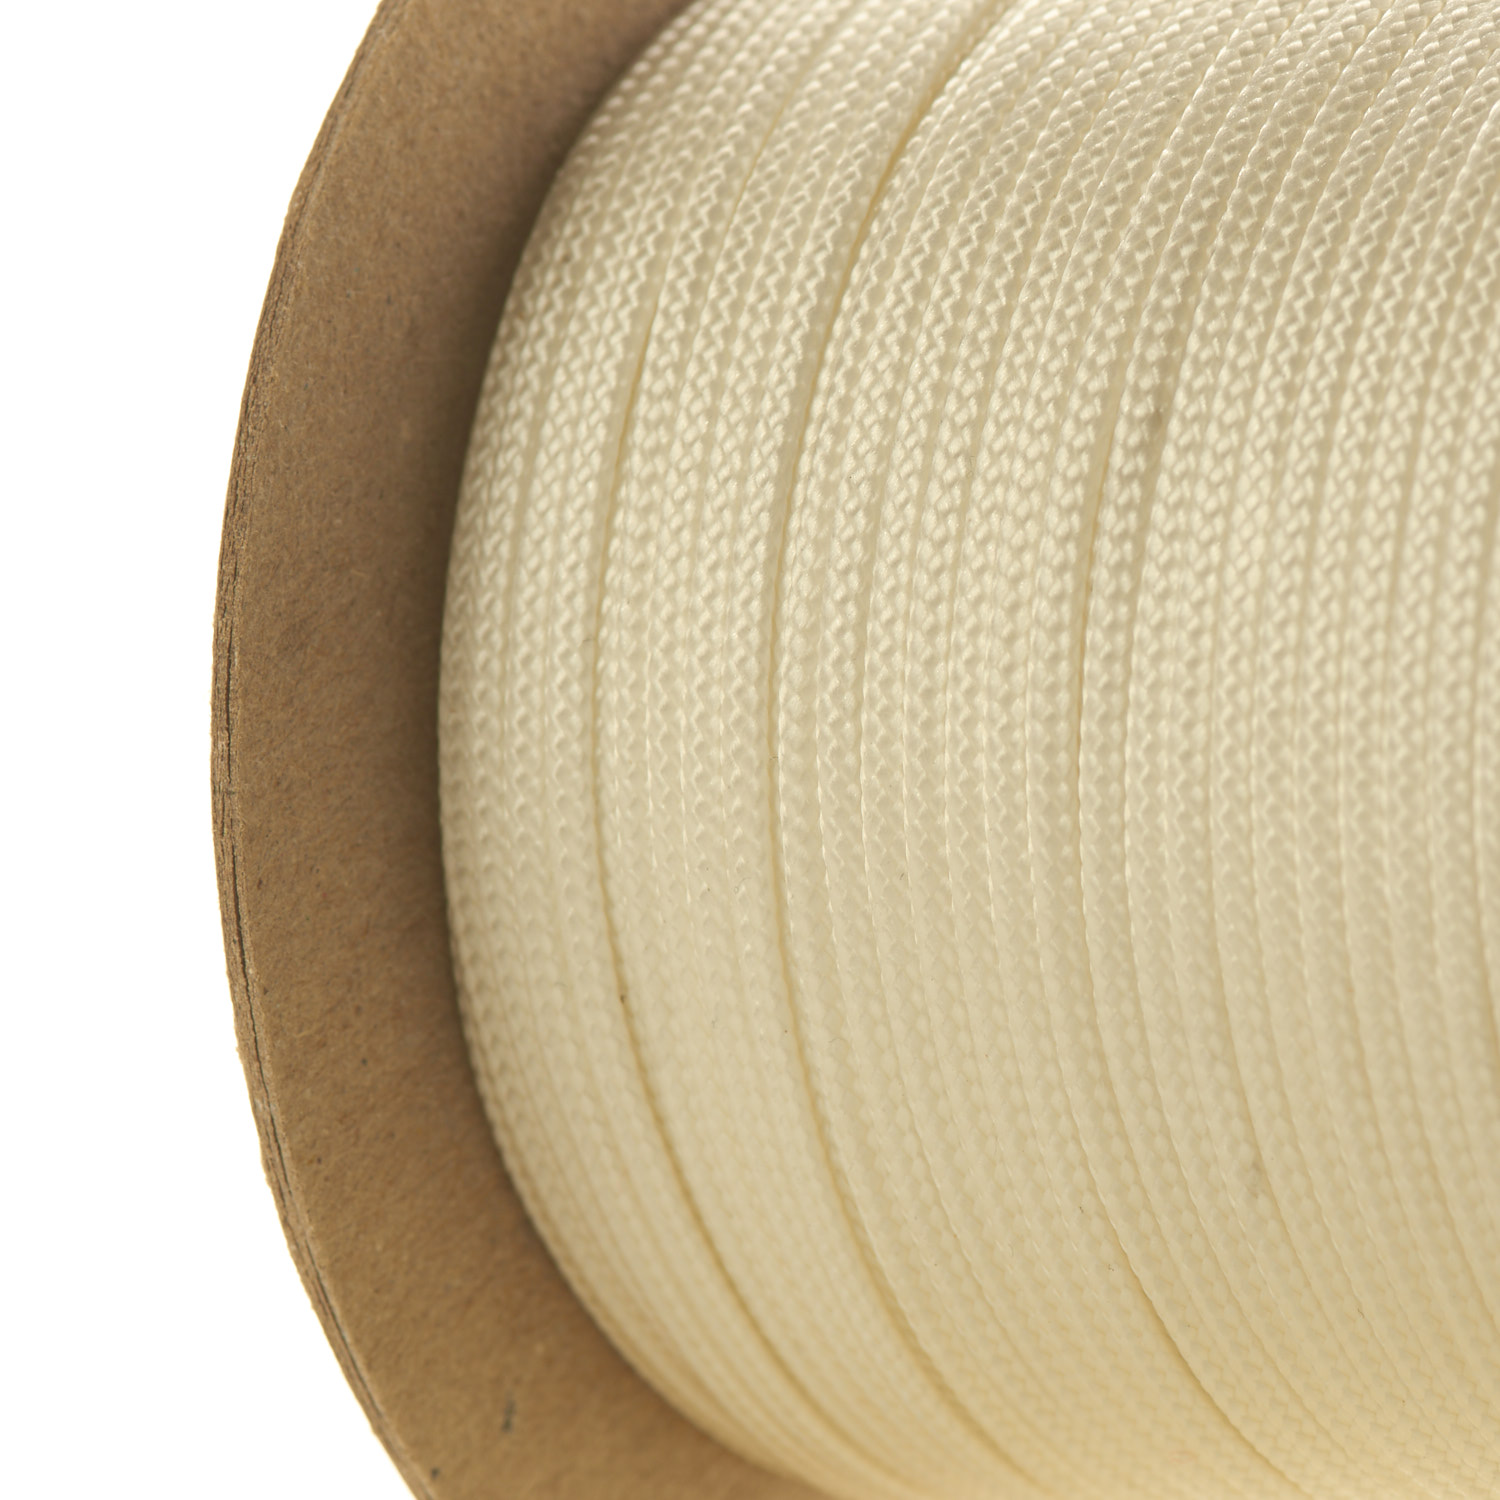 Nylon Cord Braided Cord Curtain Window Blinds Picture Framing